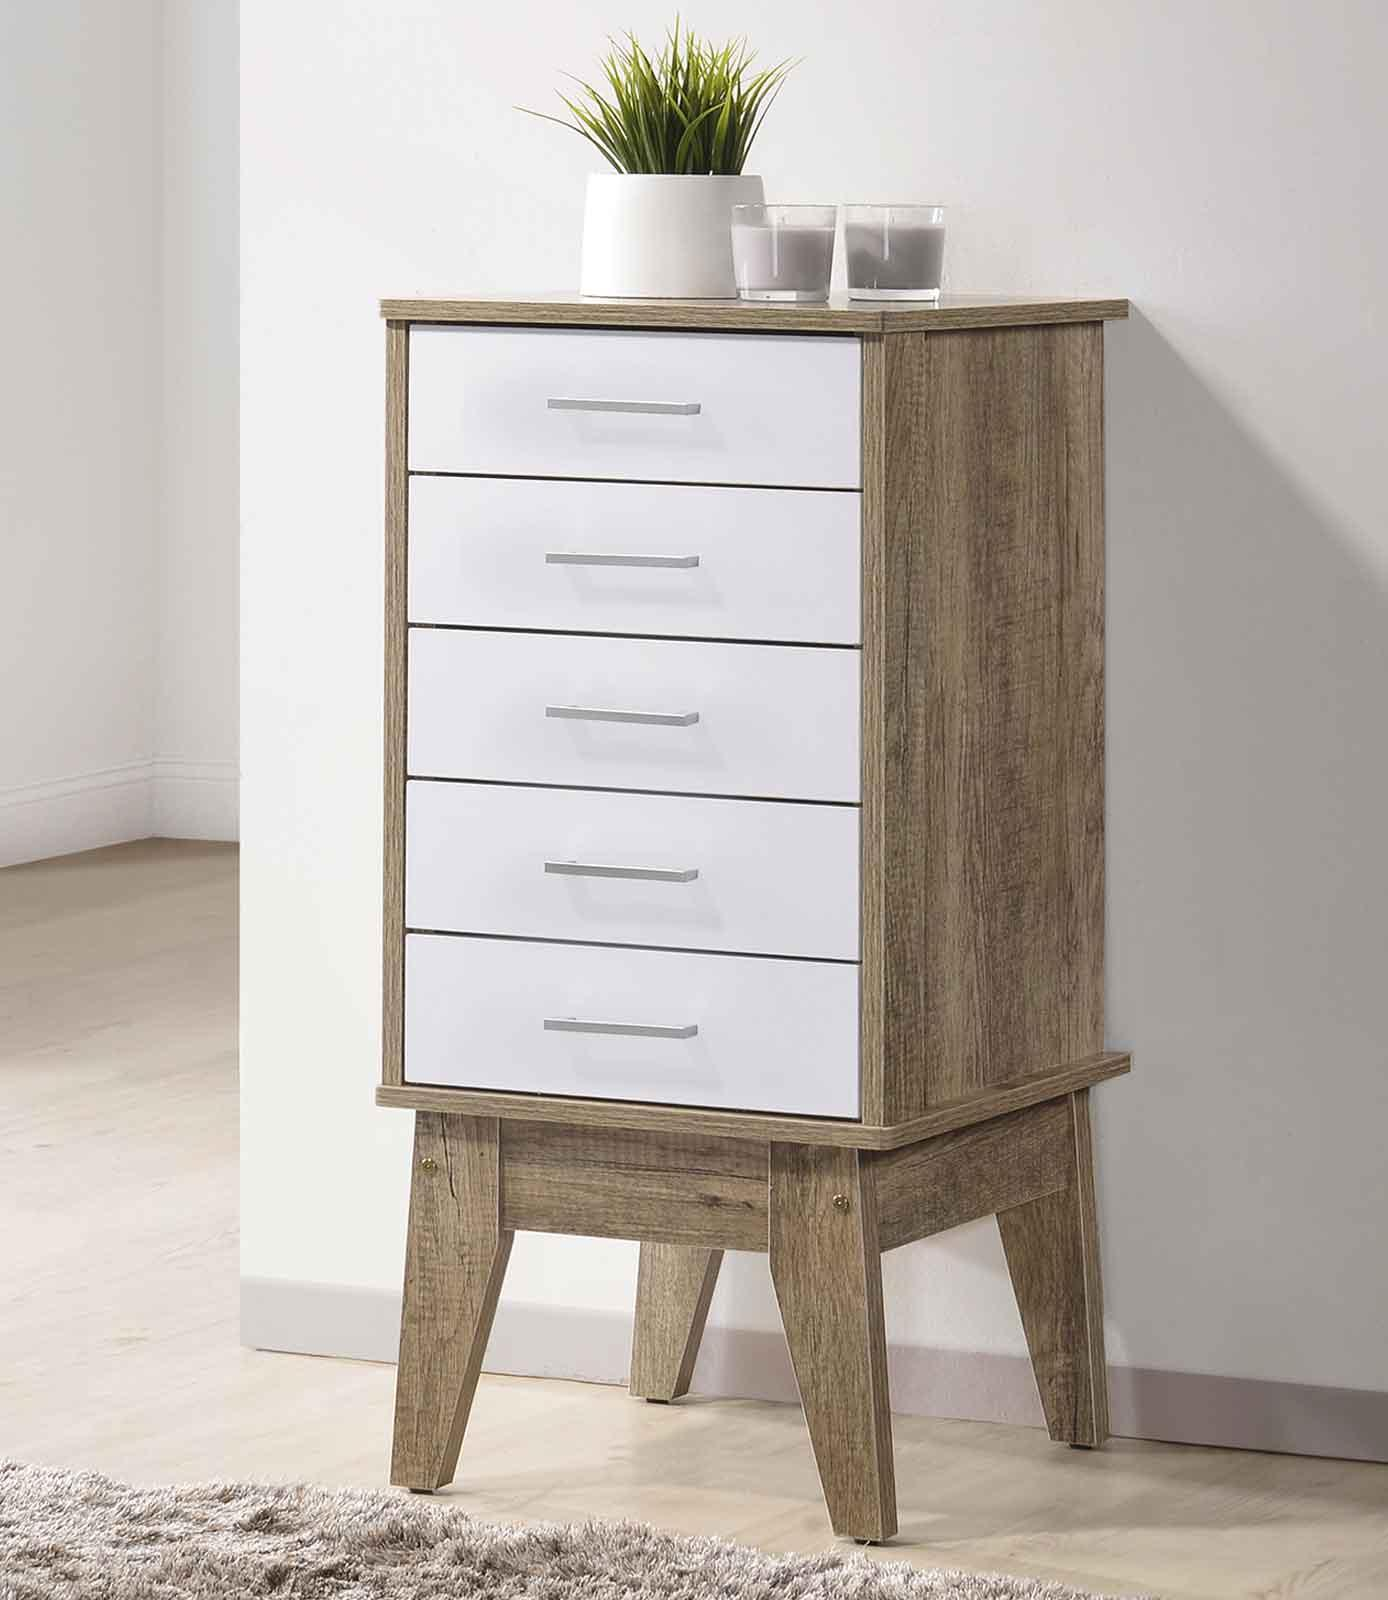 Scandinavian Chest of Drawers(Free Installation + Delivery) Storage slimboy tallboy Bedroom⭐E-LIVING Furniture